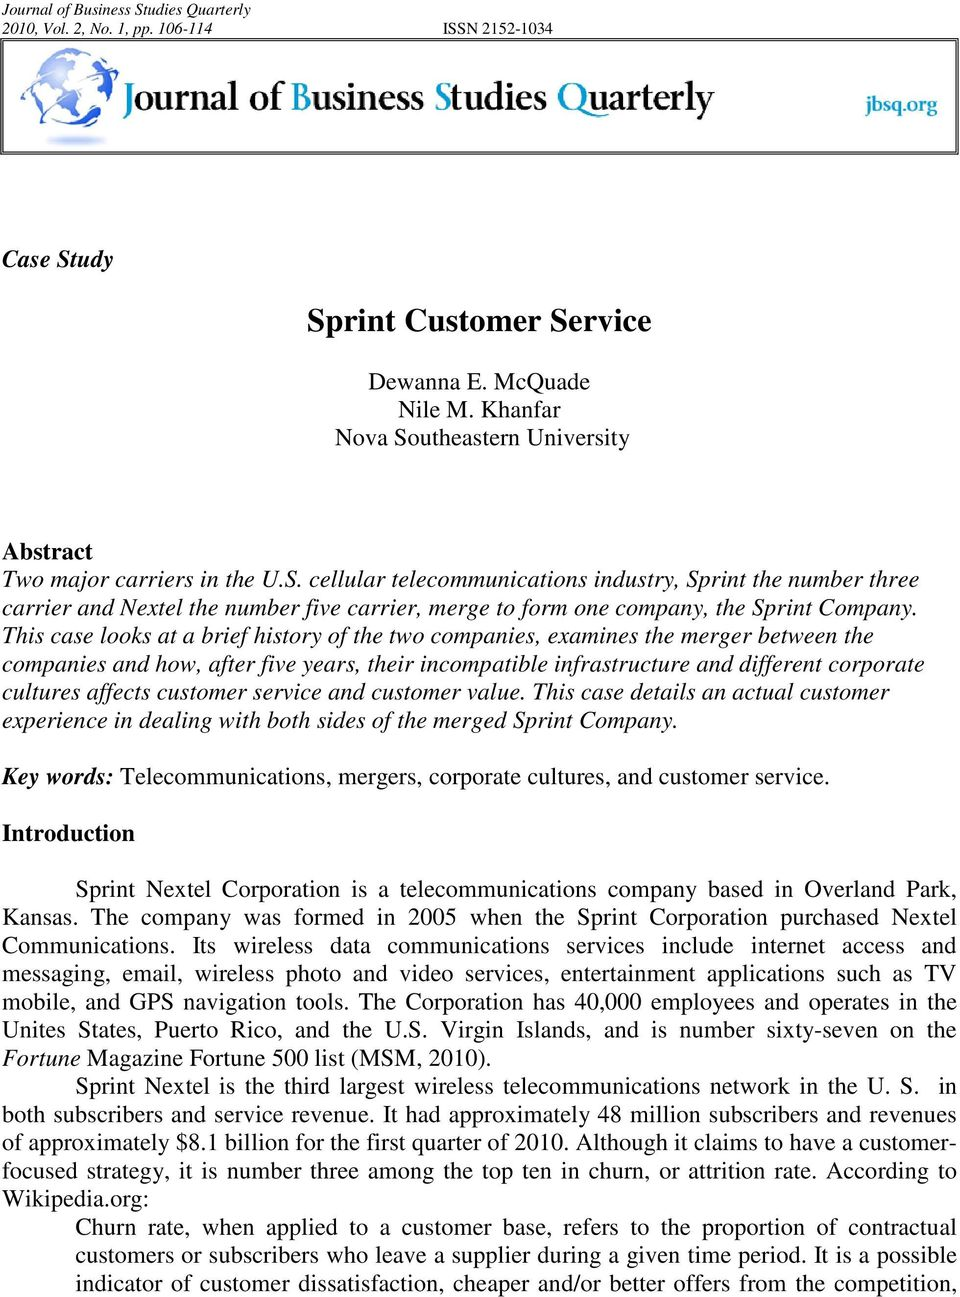 affects customer service and customer value. This case details an actual customer experience in dealing with both sides of the merged Sprint Company.